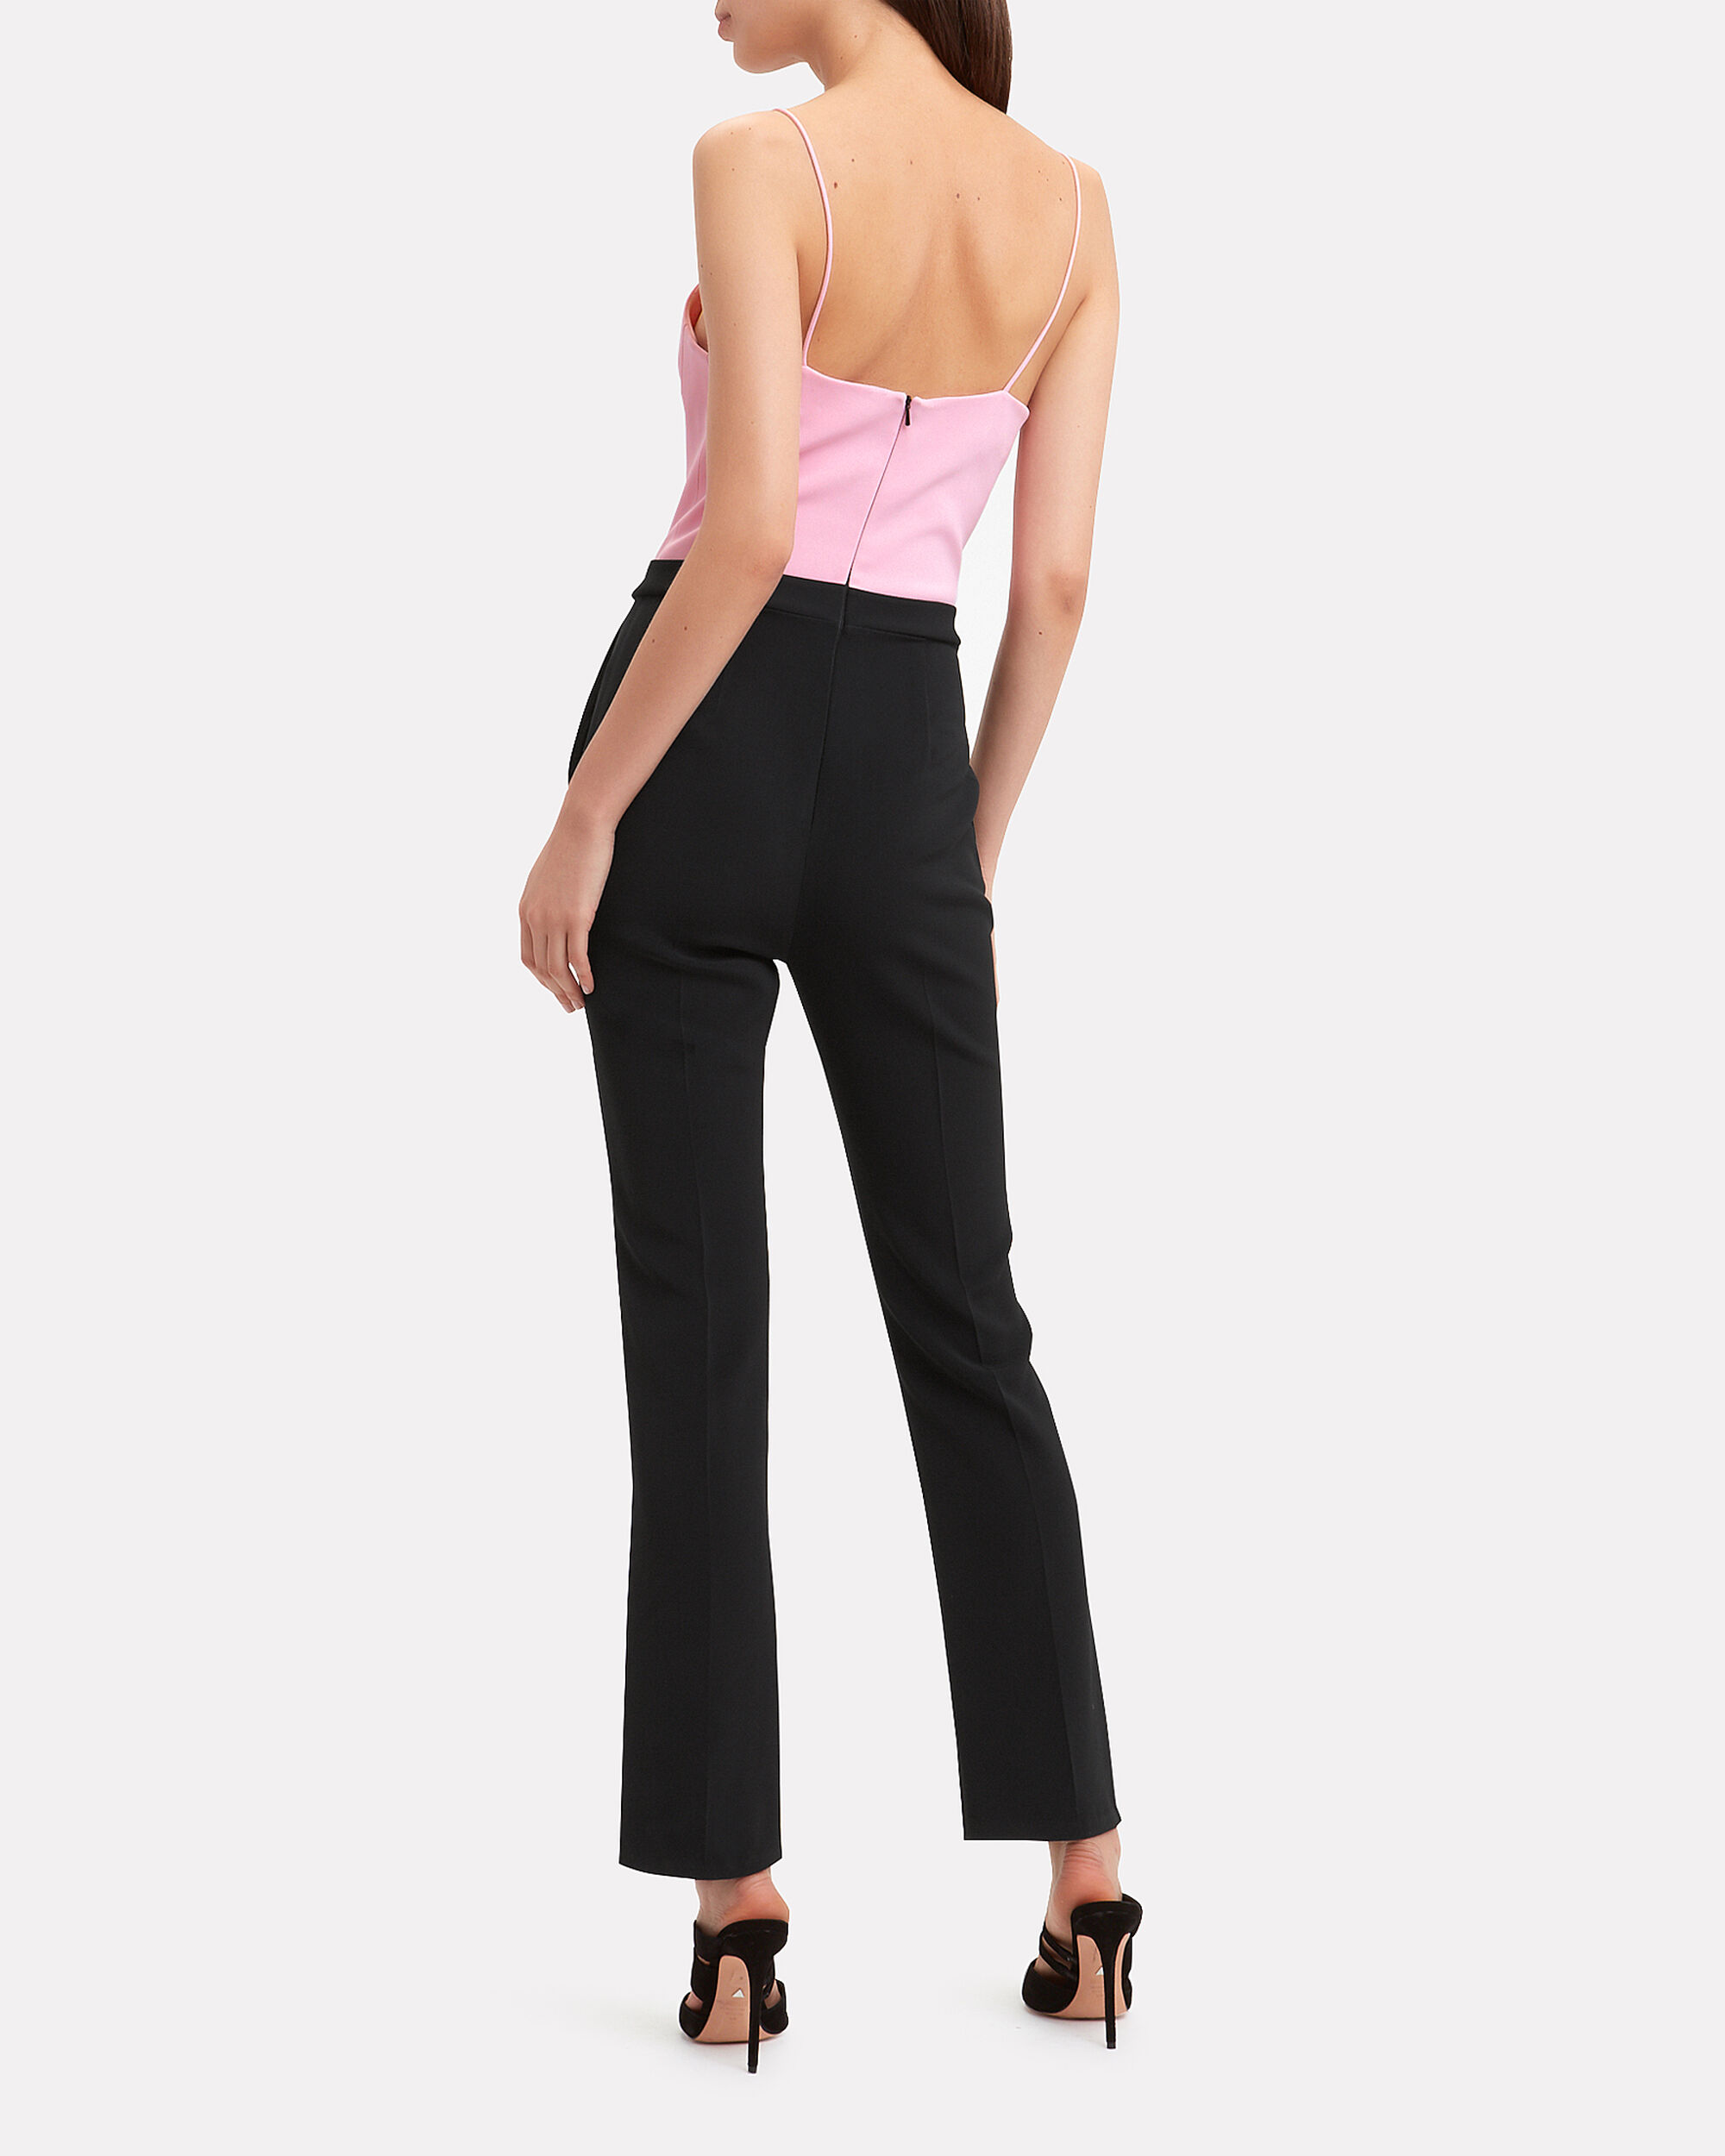 Crystal-Embellished Two-Tone Jumpsuit, PINK/BLACK, hi-res